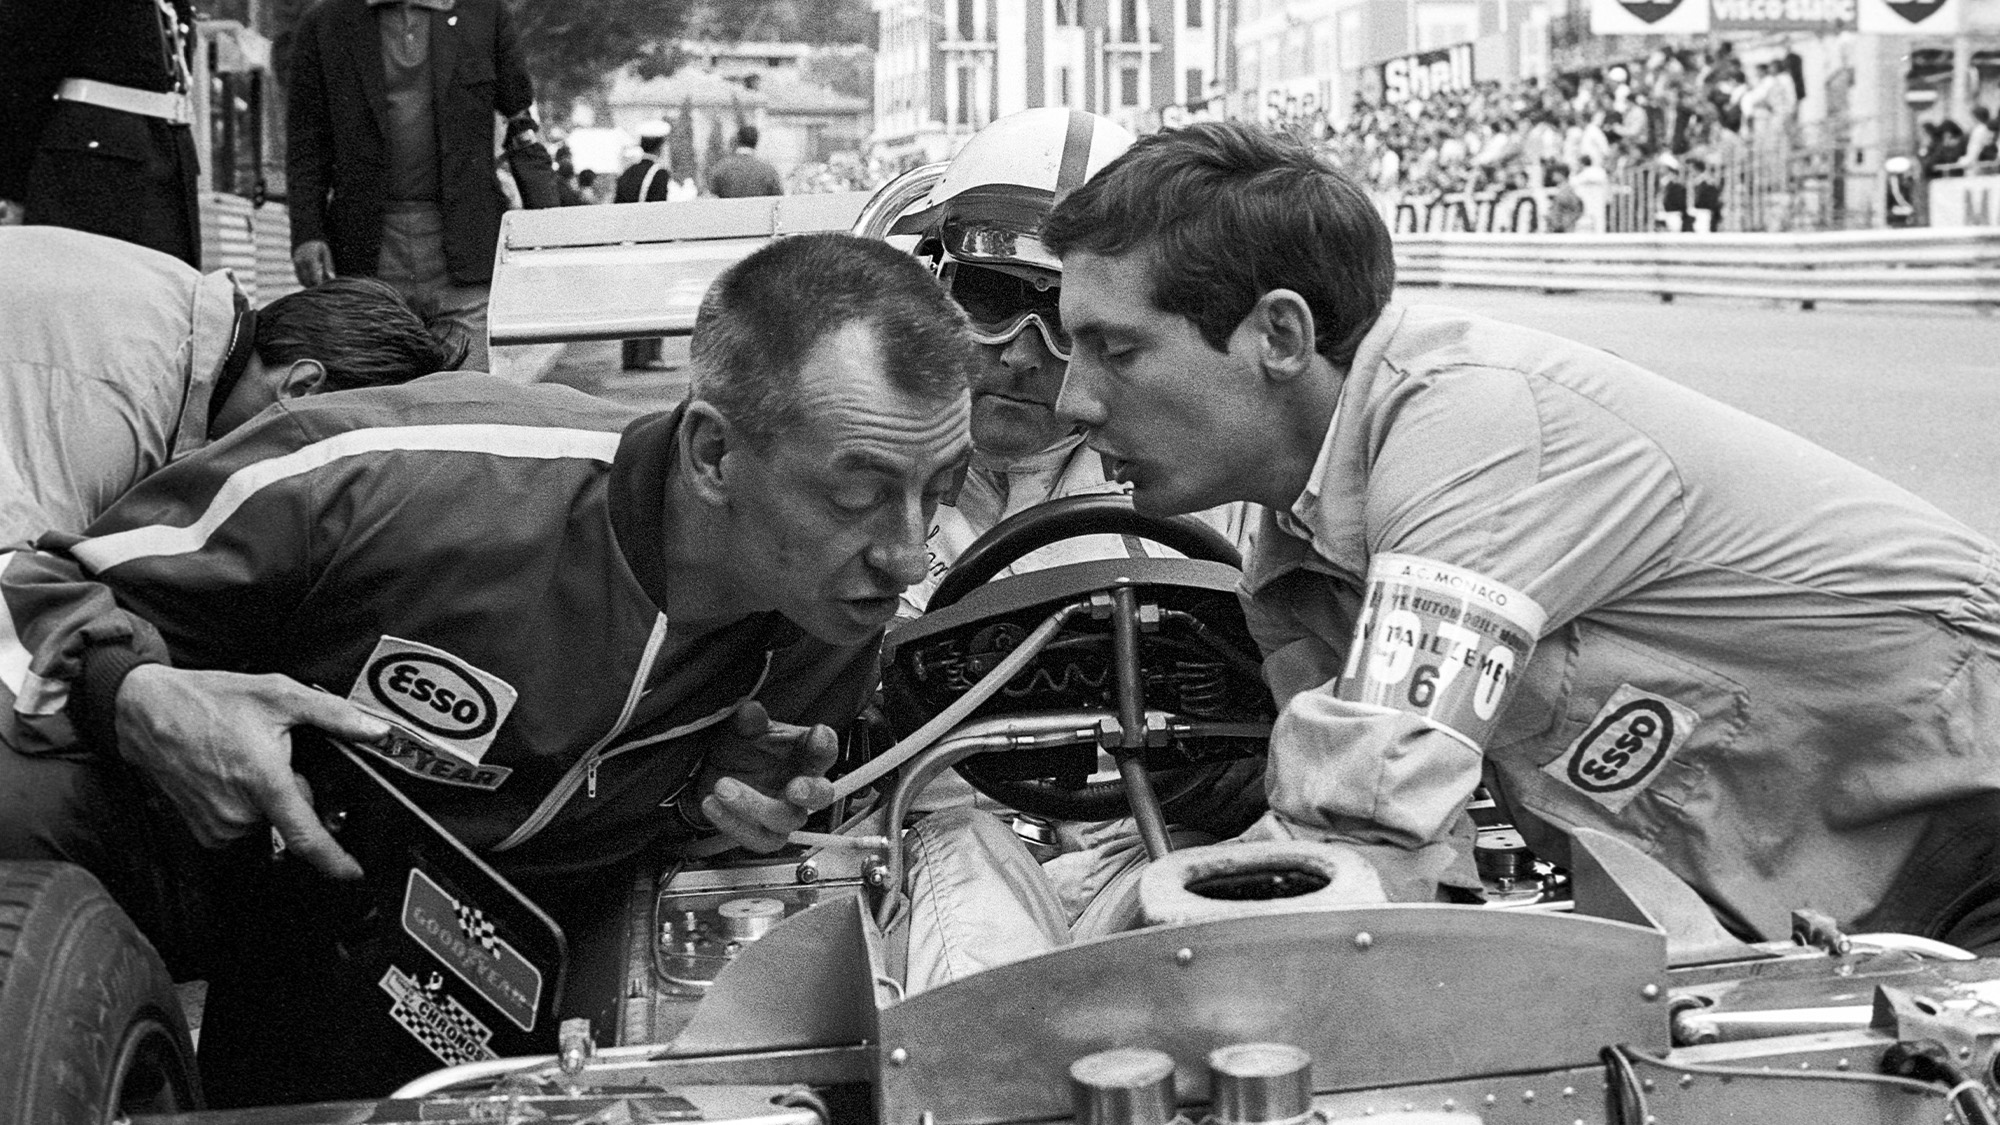 Ron Tauranac and Ron Dennis peer into the Brabham Ford BT33 of Jack Brabahm - sat in the cockpit - at the 1970 Monaco Grand Prix